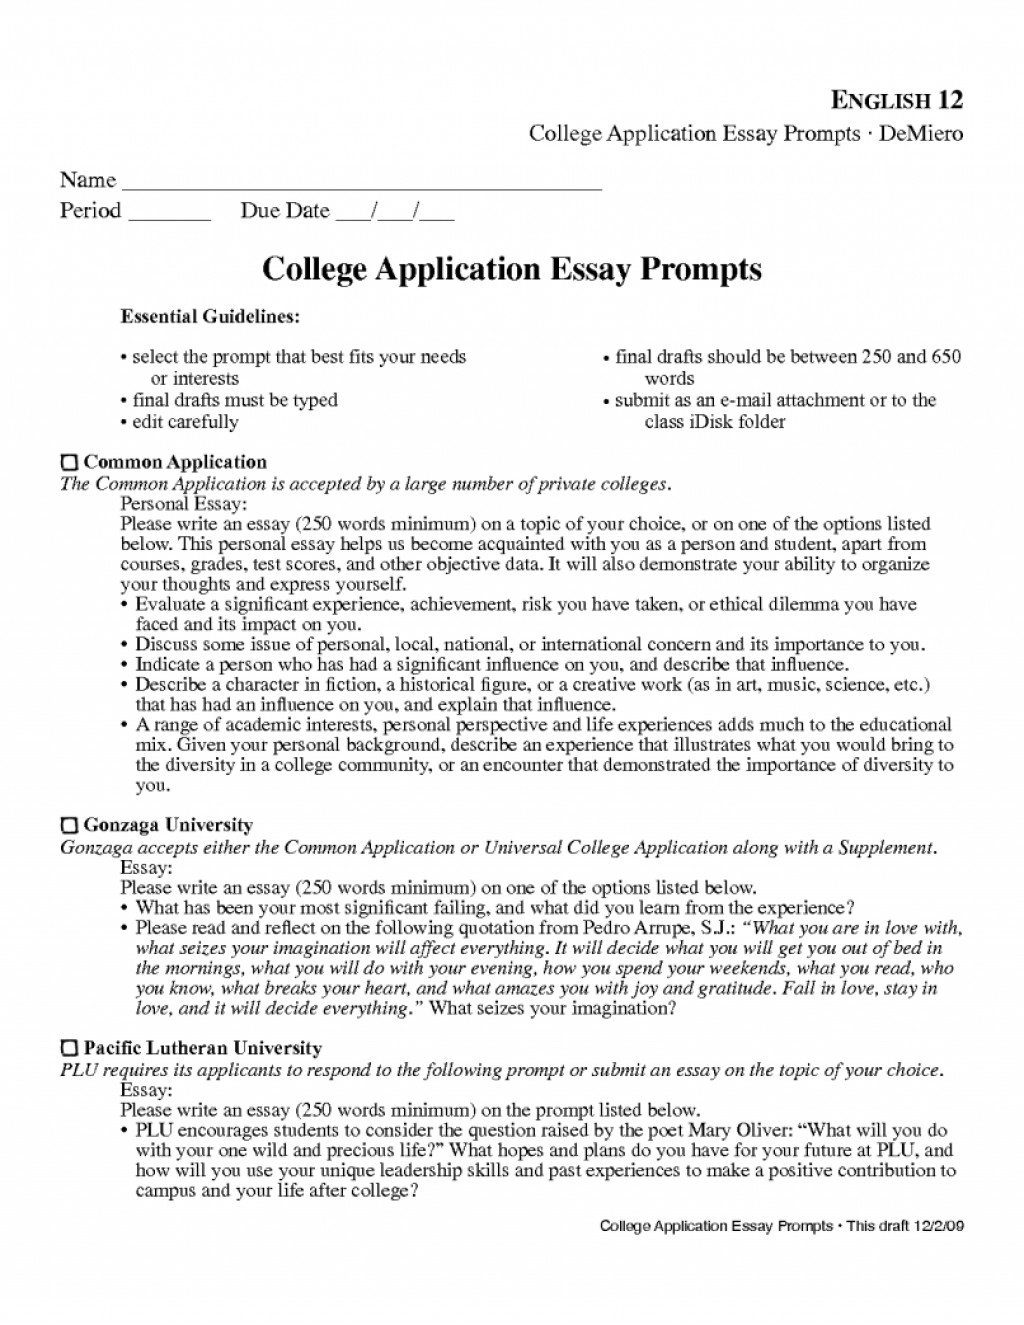 006 Best Common App Essays Essay Example The Prompts Poemdoc Or College Using Quotes In Quotesgram Admission L Ucf Prompt Boston Uc Harvard Texas Mit Magnificent 2018 Ivy League New York Times Large